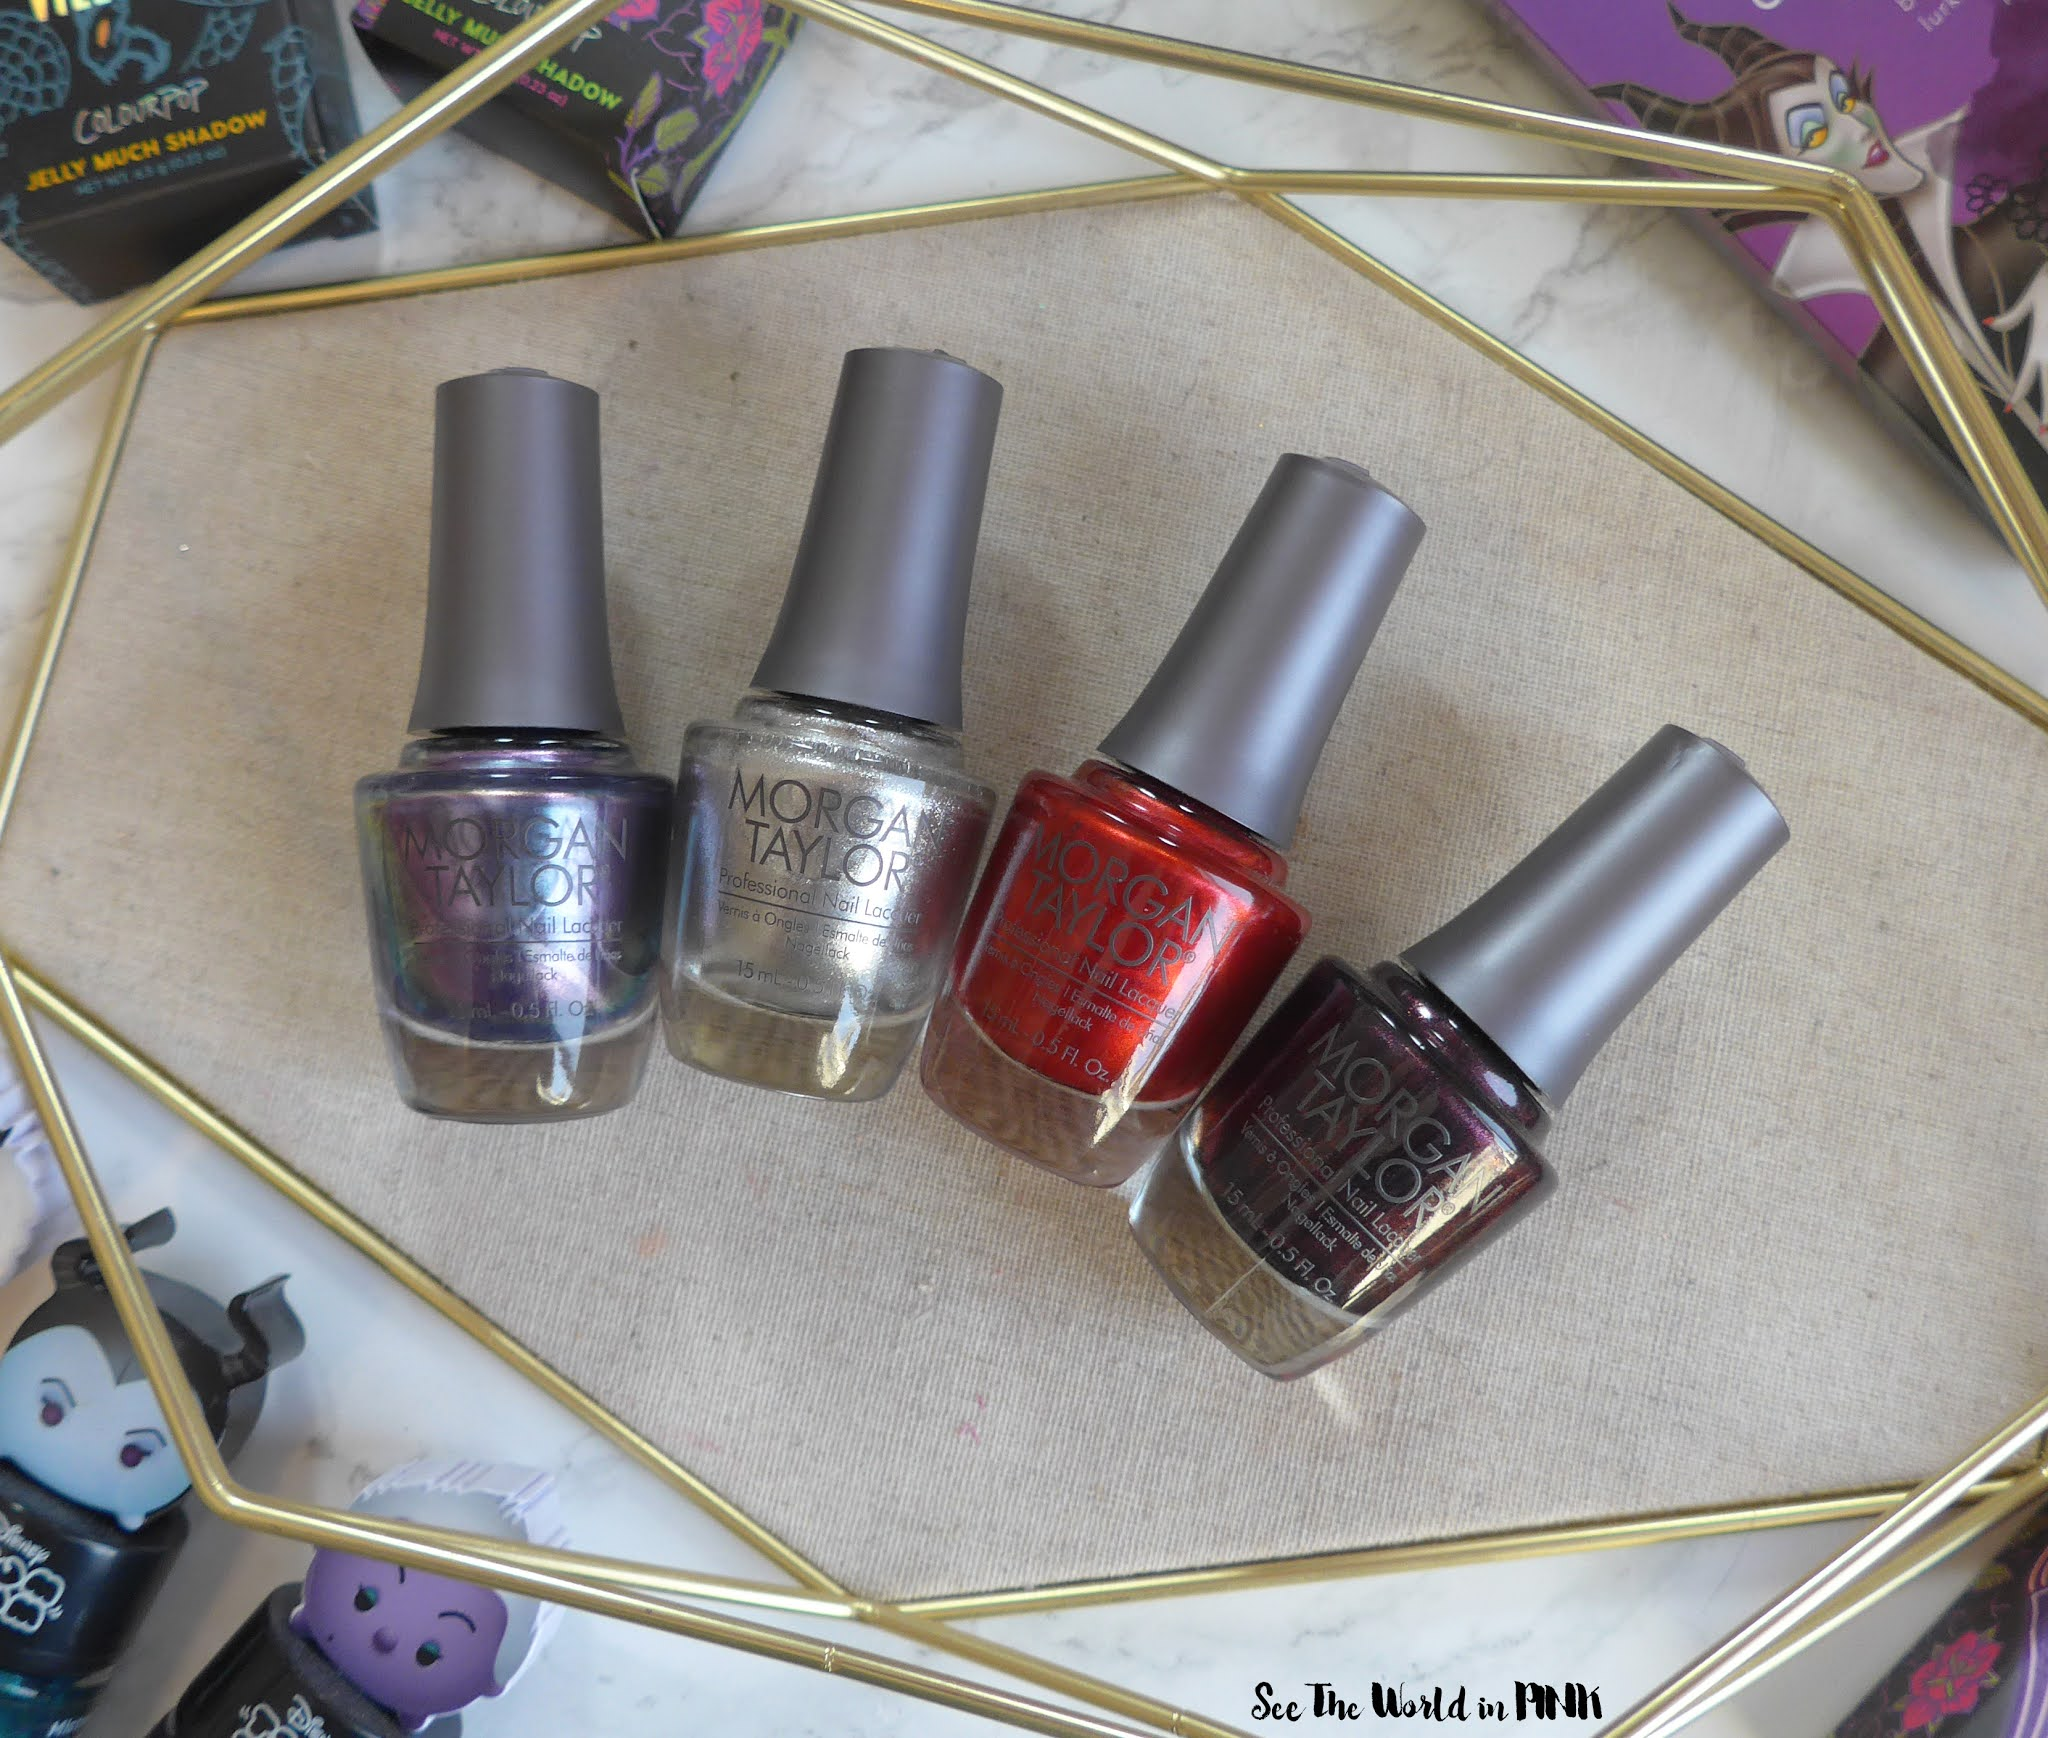 Manicure Monday - Disney Villains Collection by Morgan Taylor